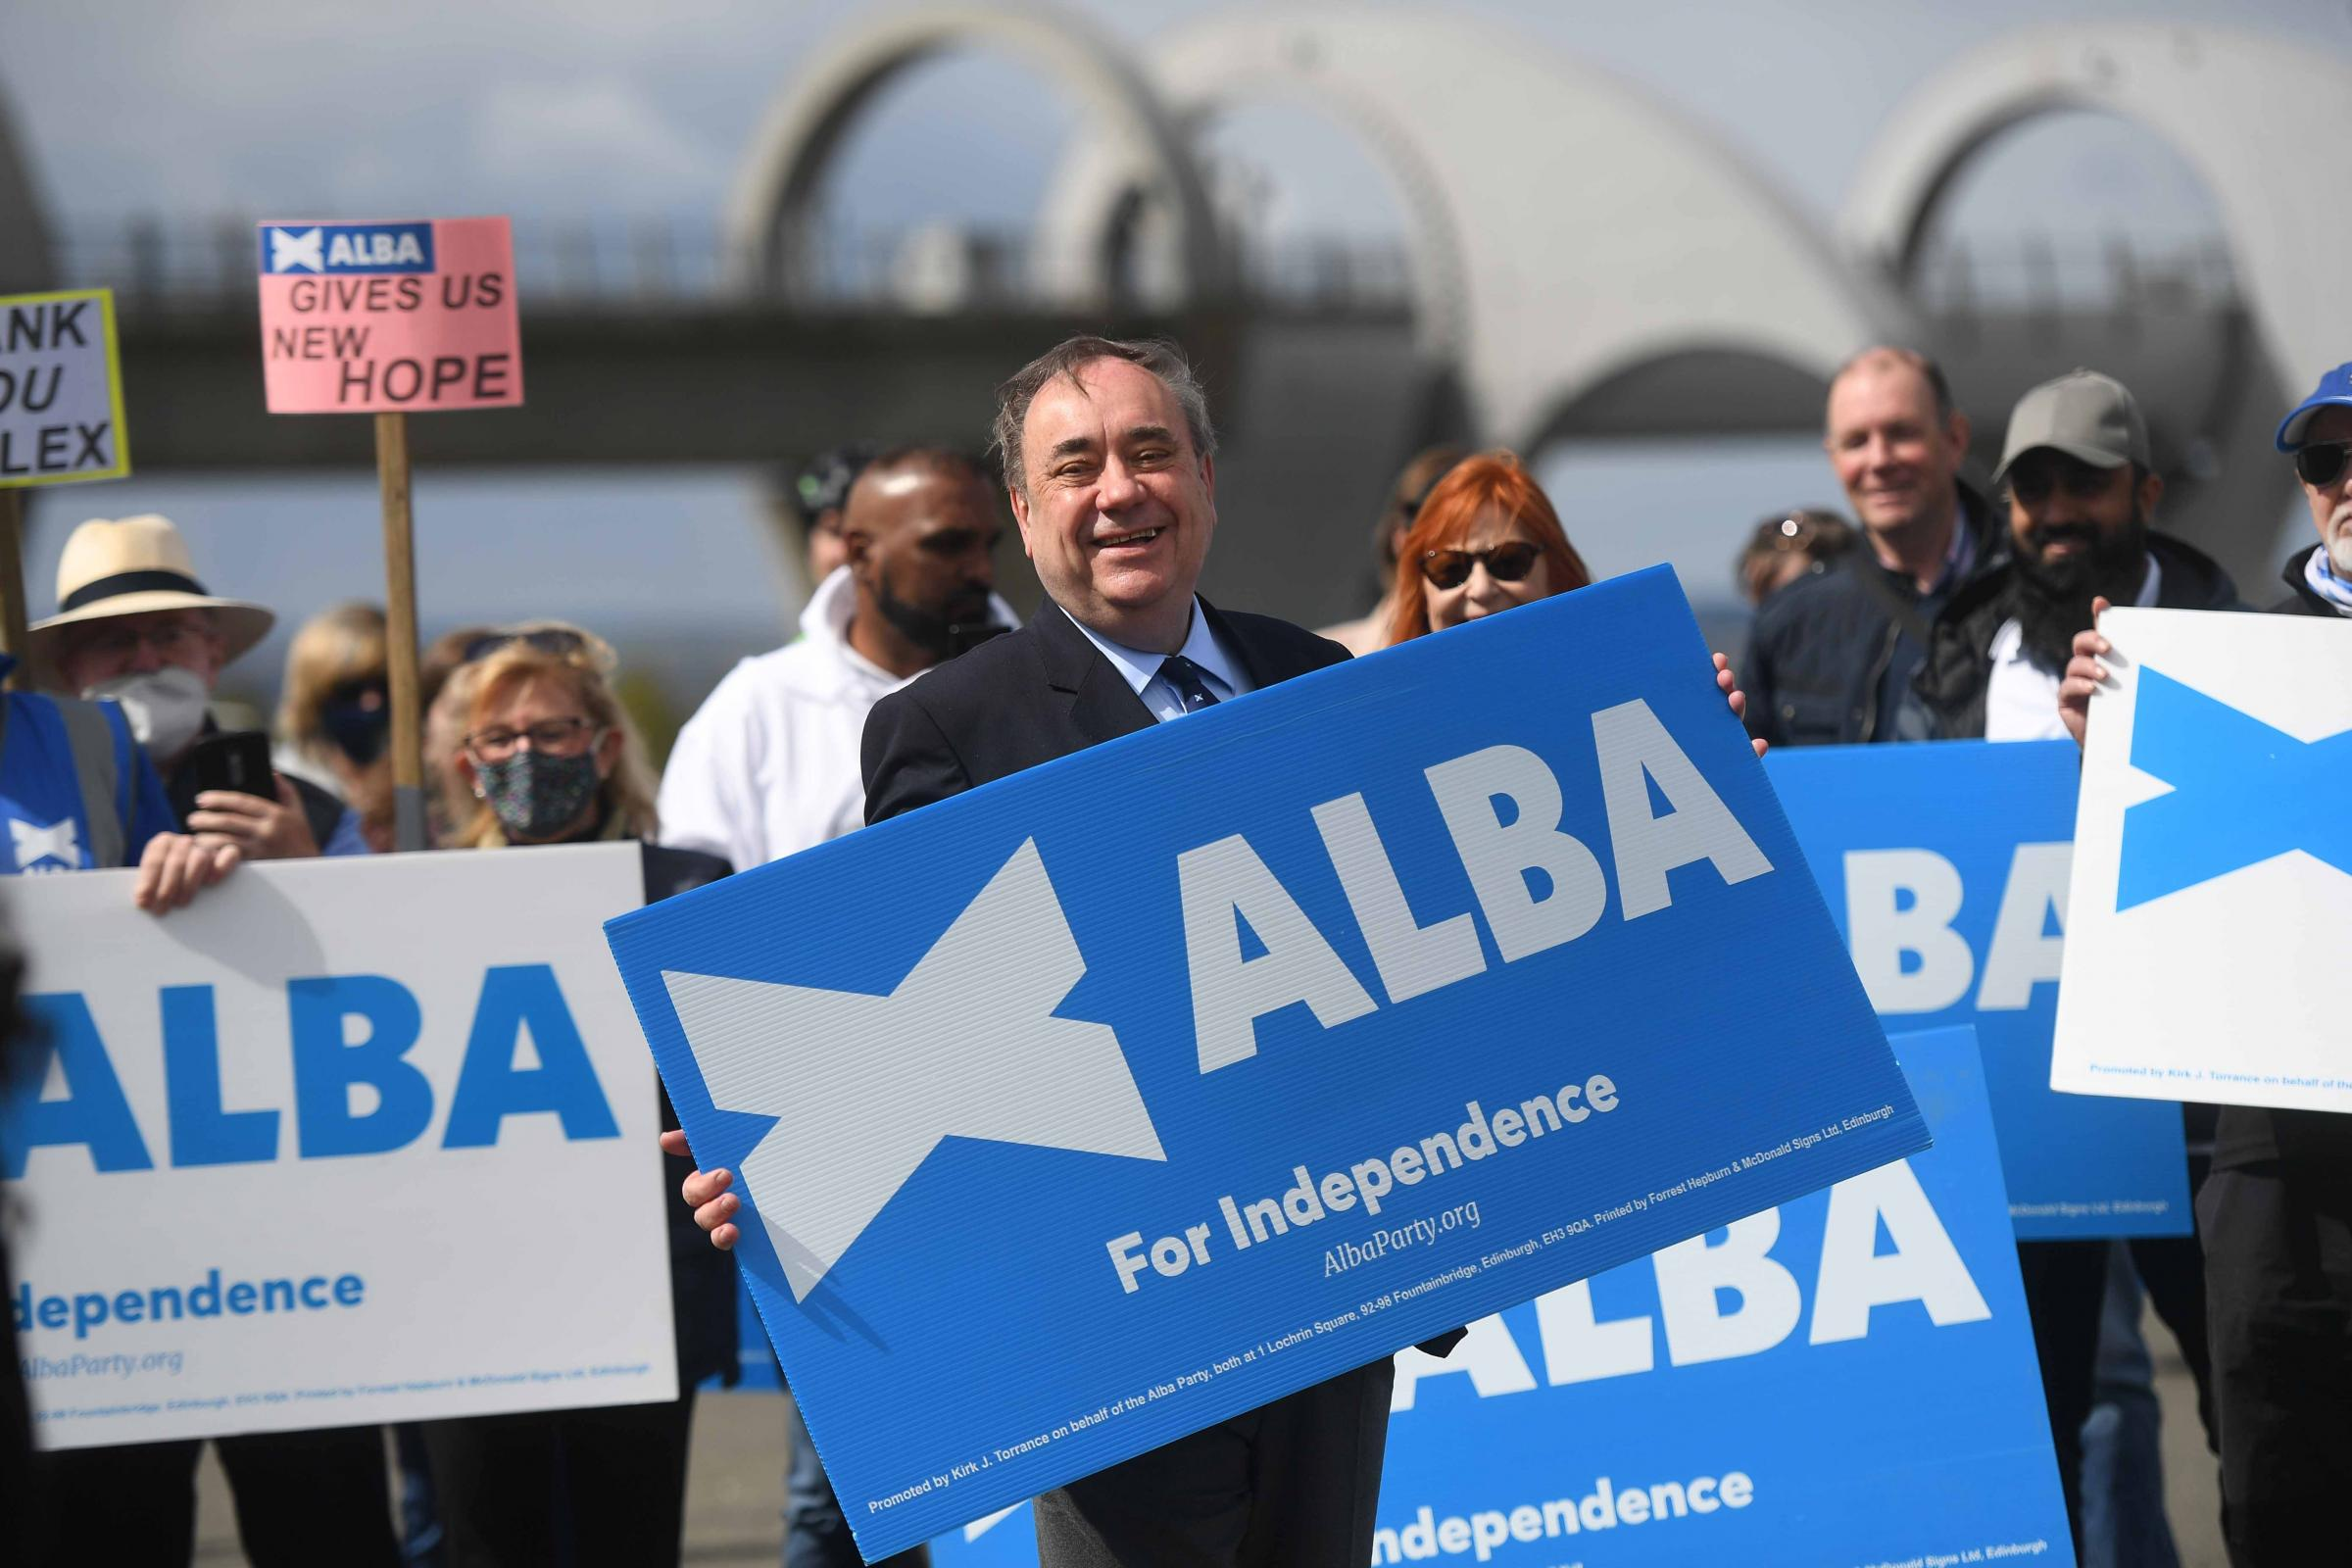 Watch: Alex Salmond in appeal to  'independence family' to back Alba